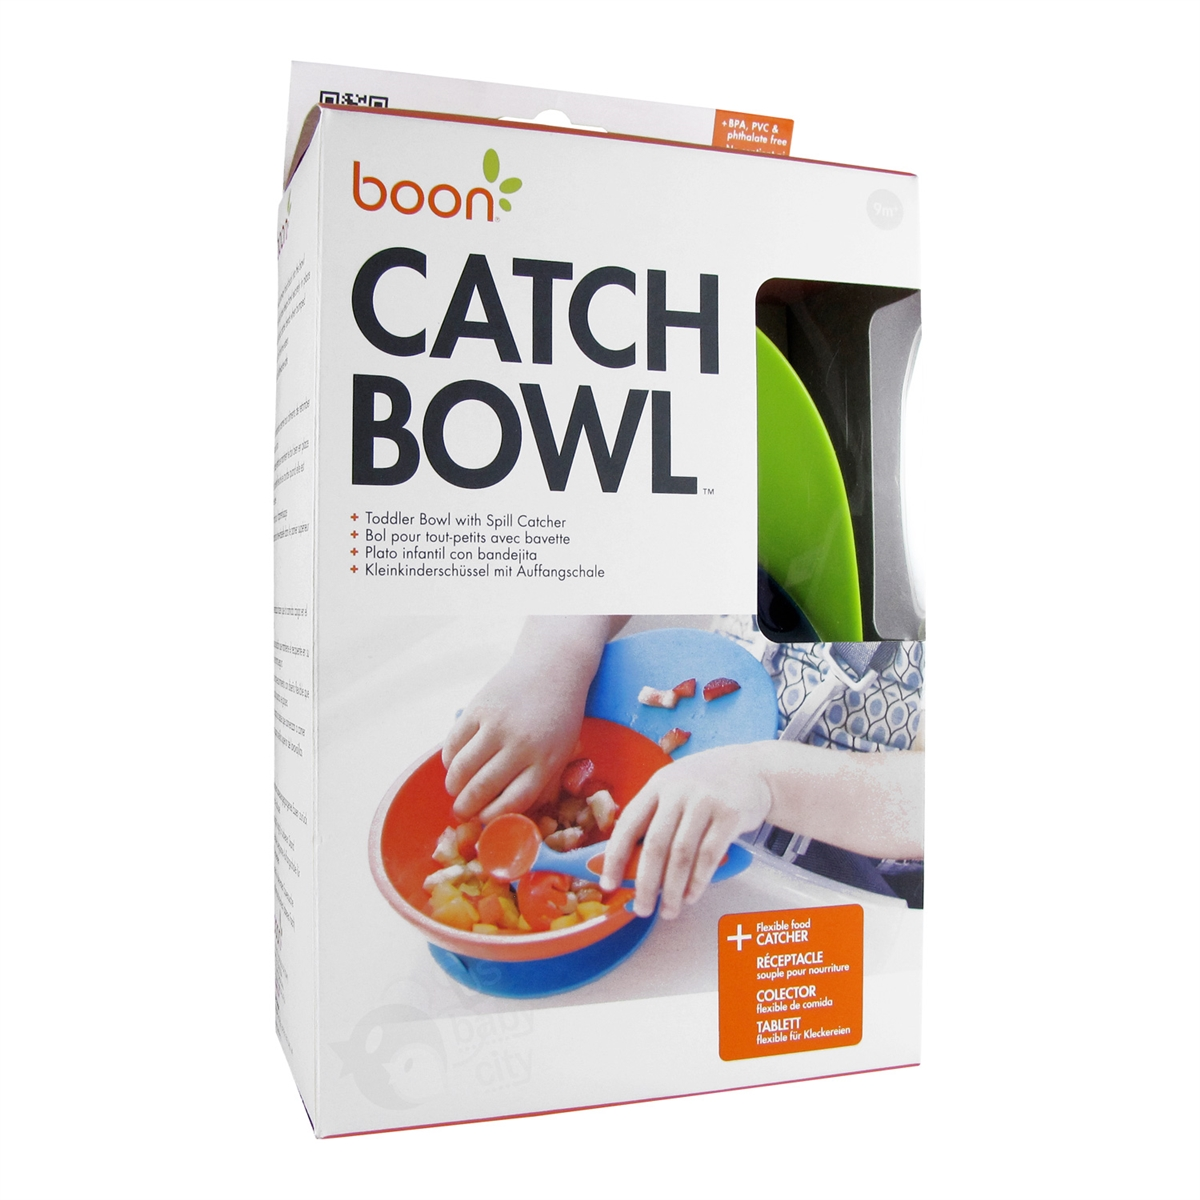 Catch Bowl Toddler With Spill Catcher Green Blue Boon Pulp Feeder